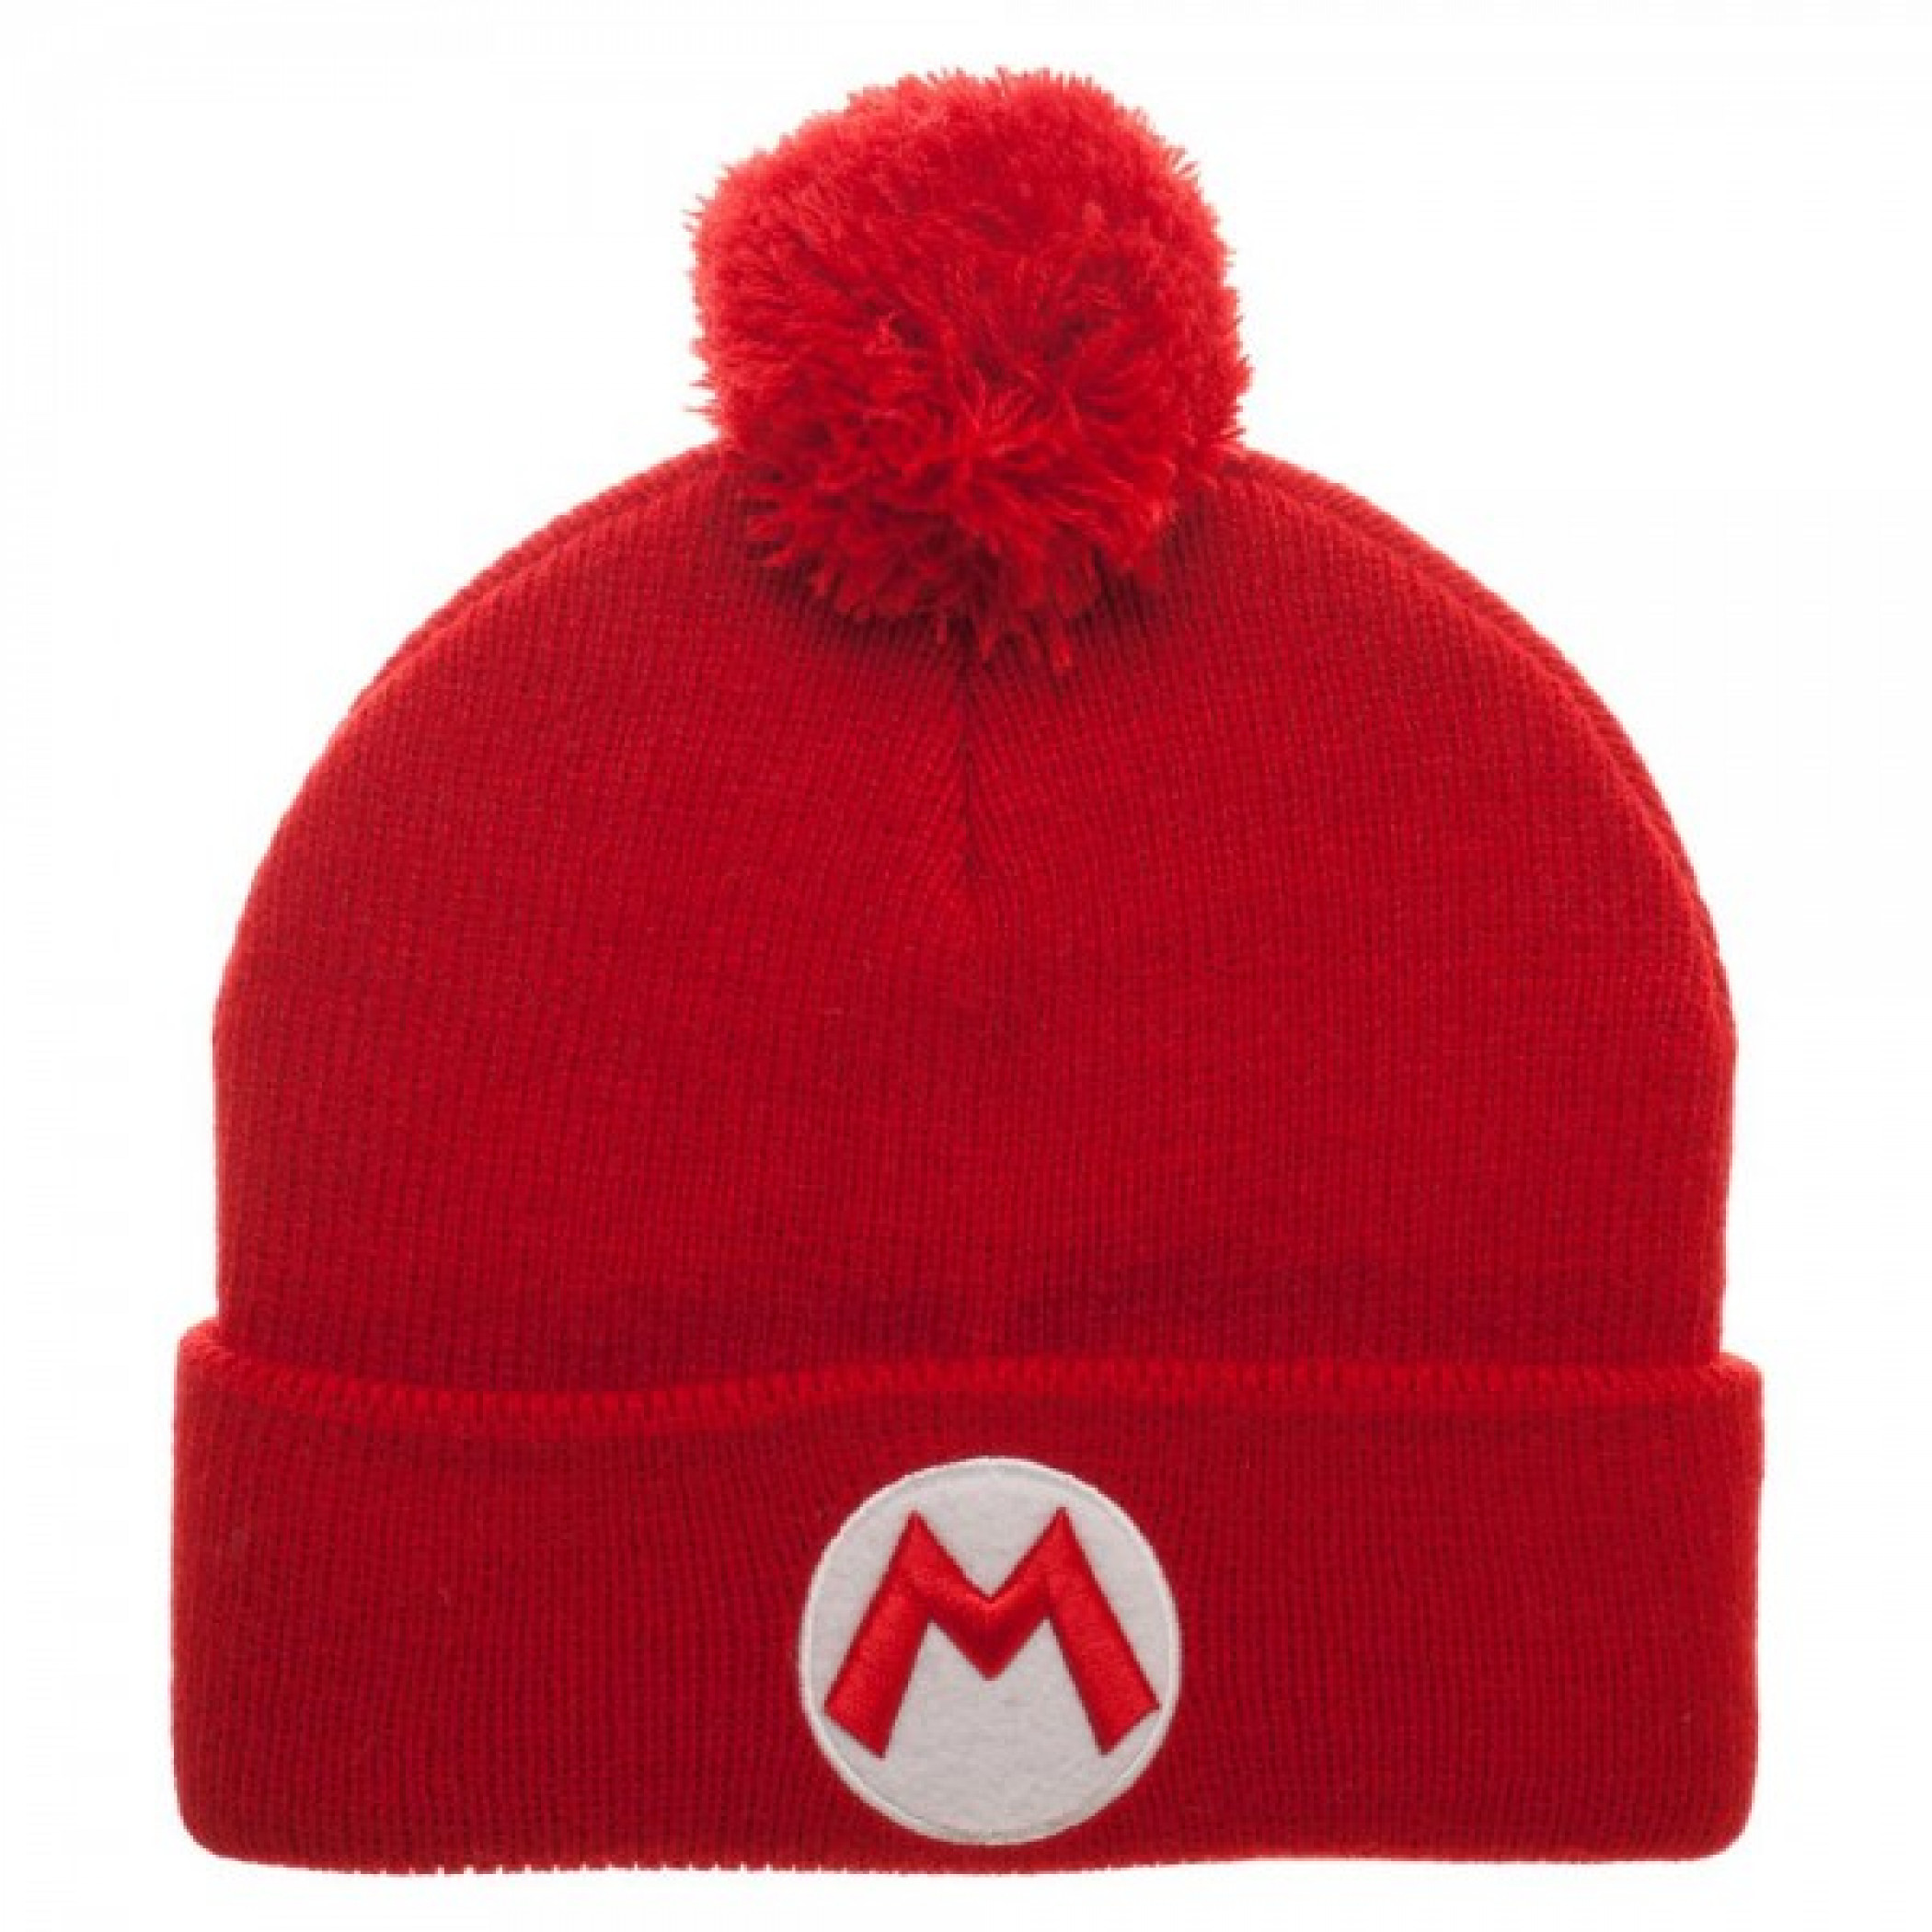 Nintendo Super Mario Bros. Winter Pom Beanie